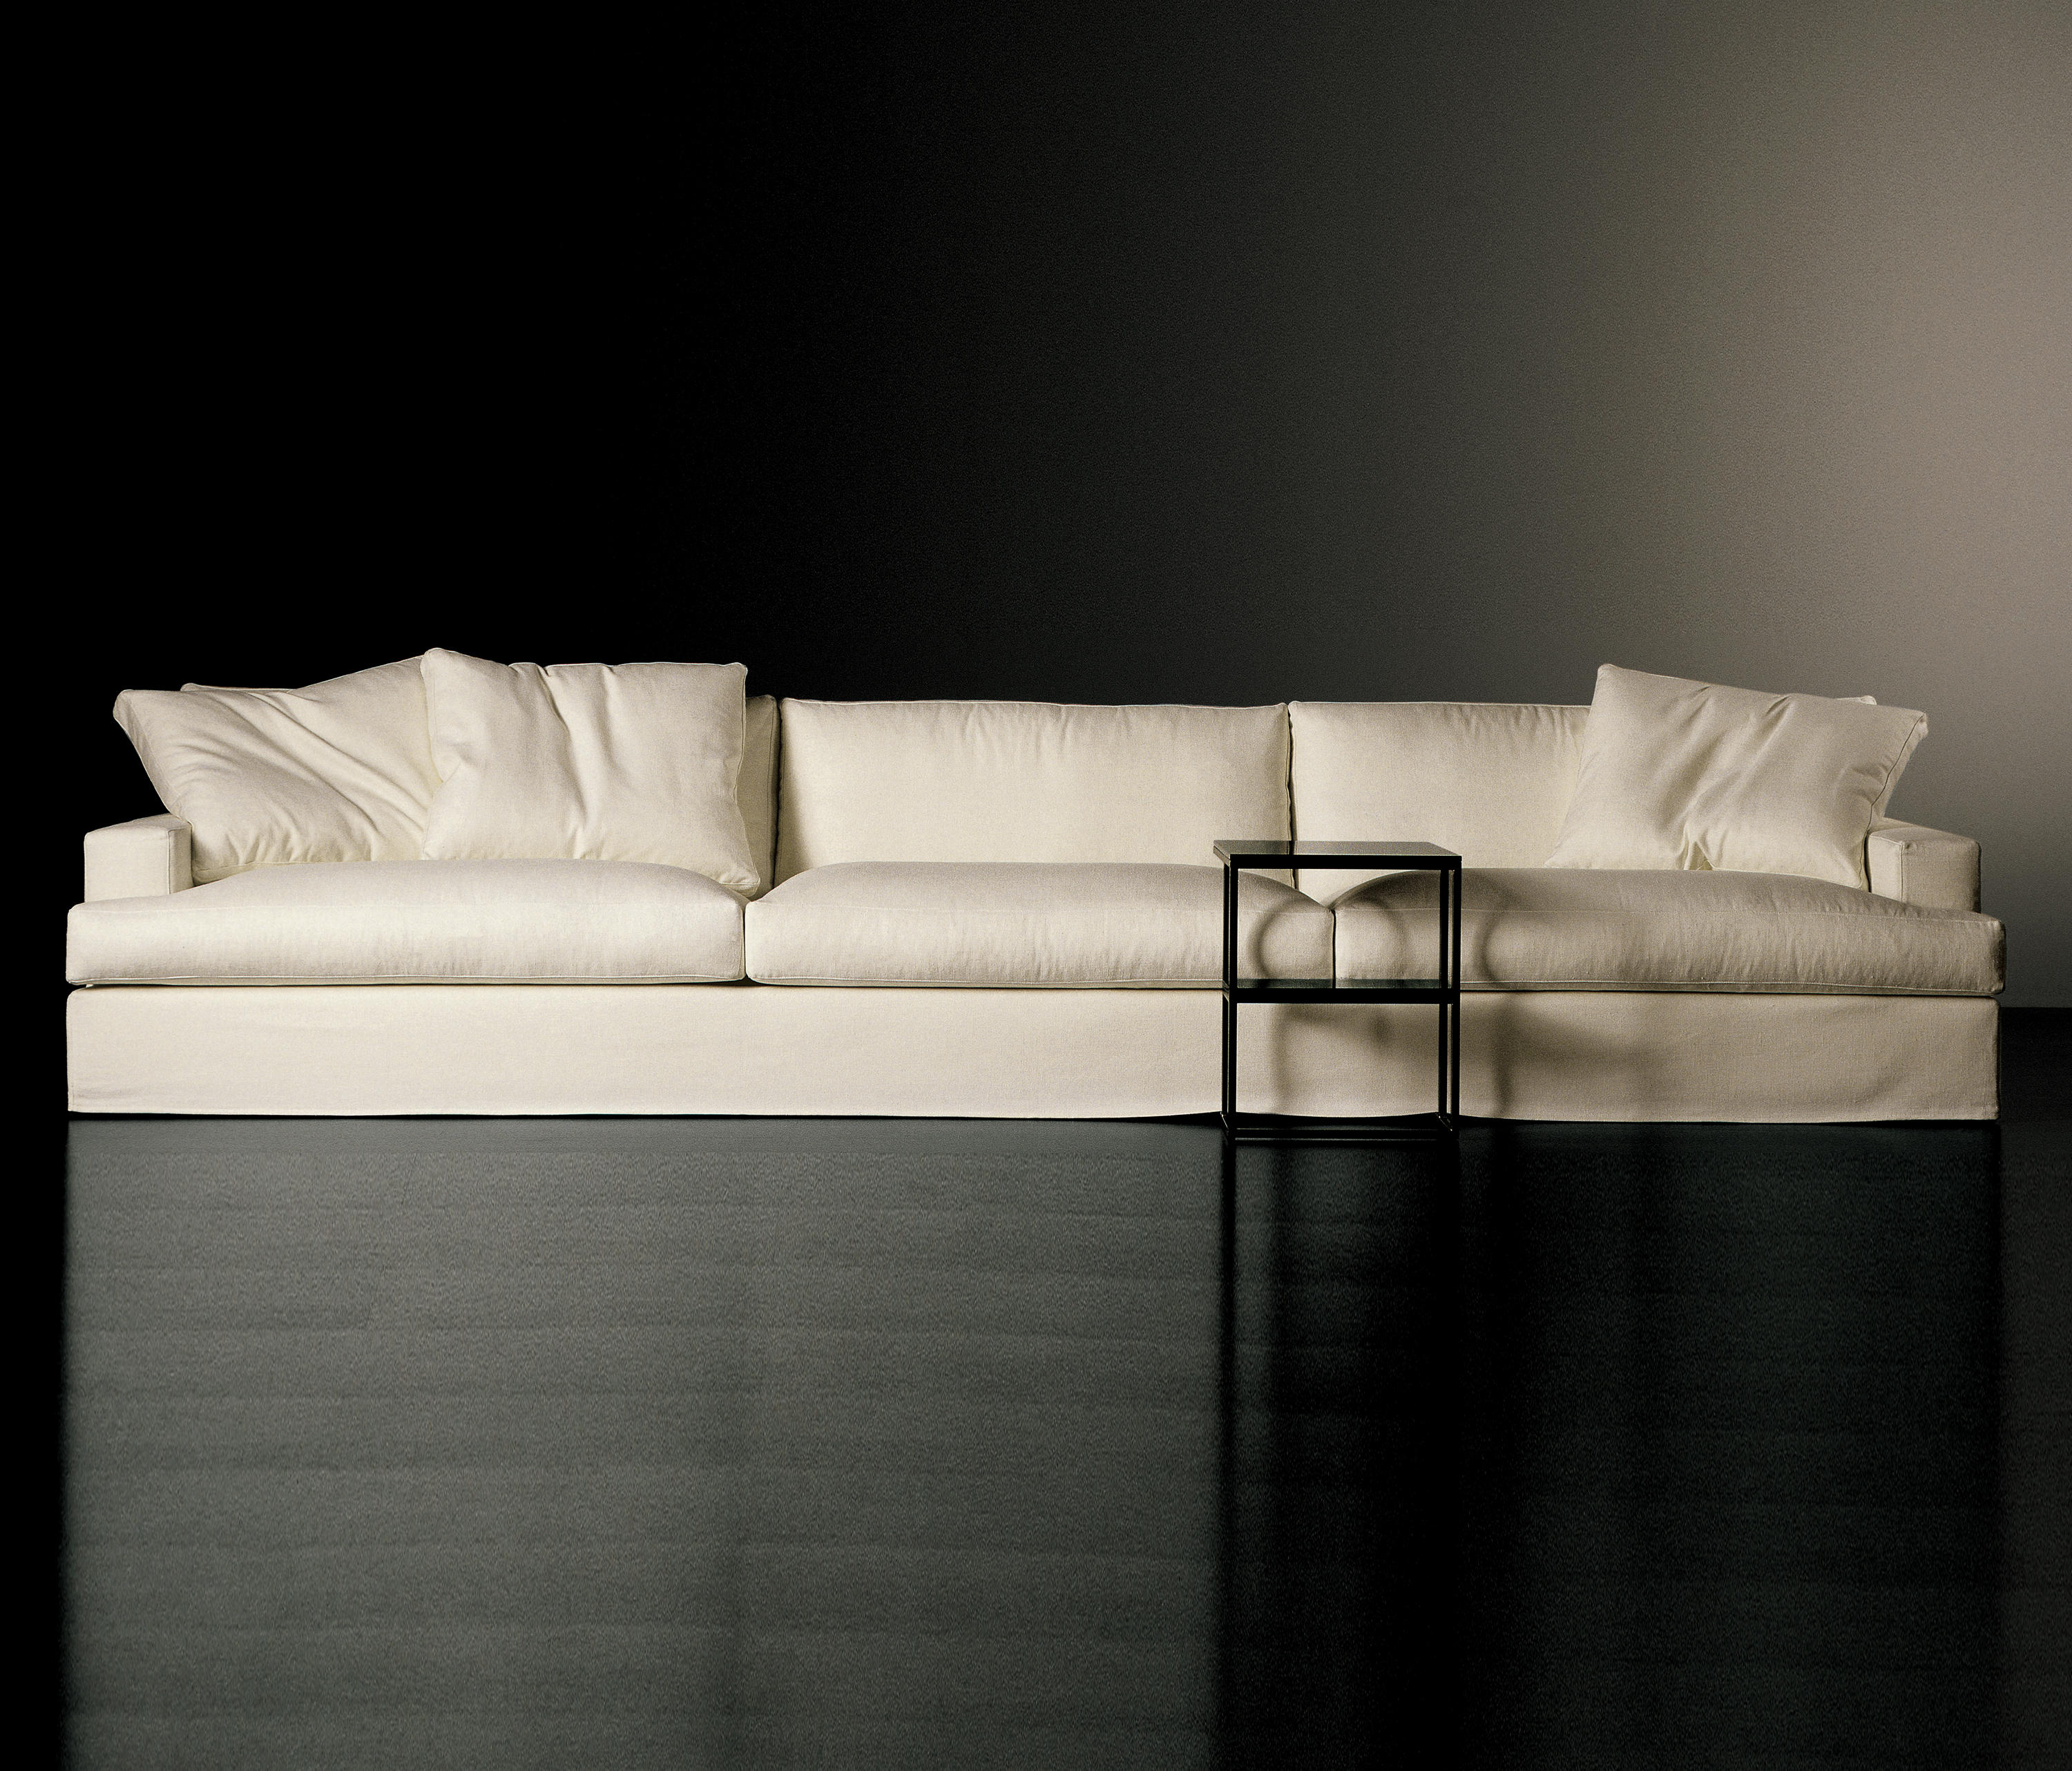 james large sofa sofas from meridiani architonic. Black Bedroom Furniture Sets. Home Design Ideas